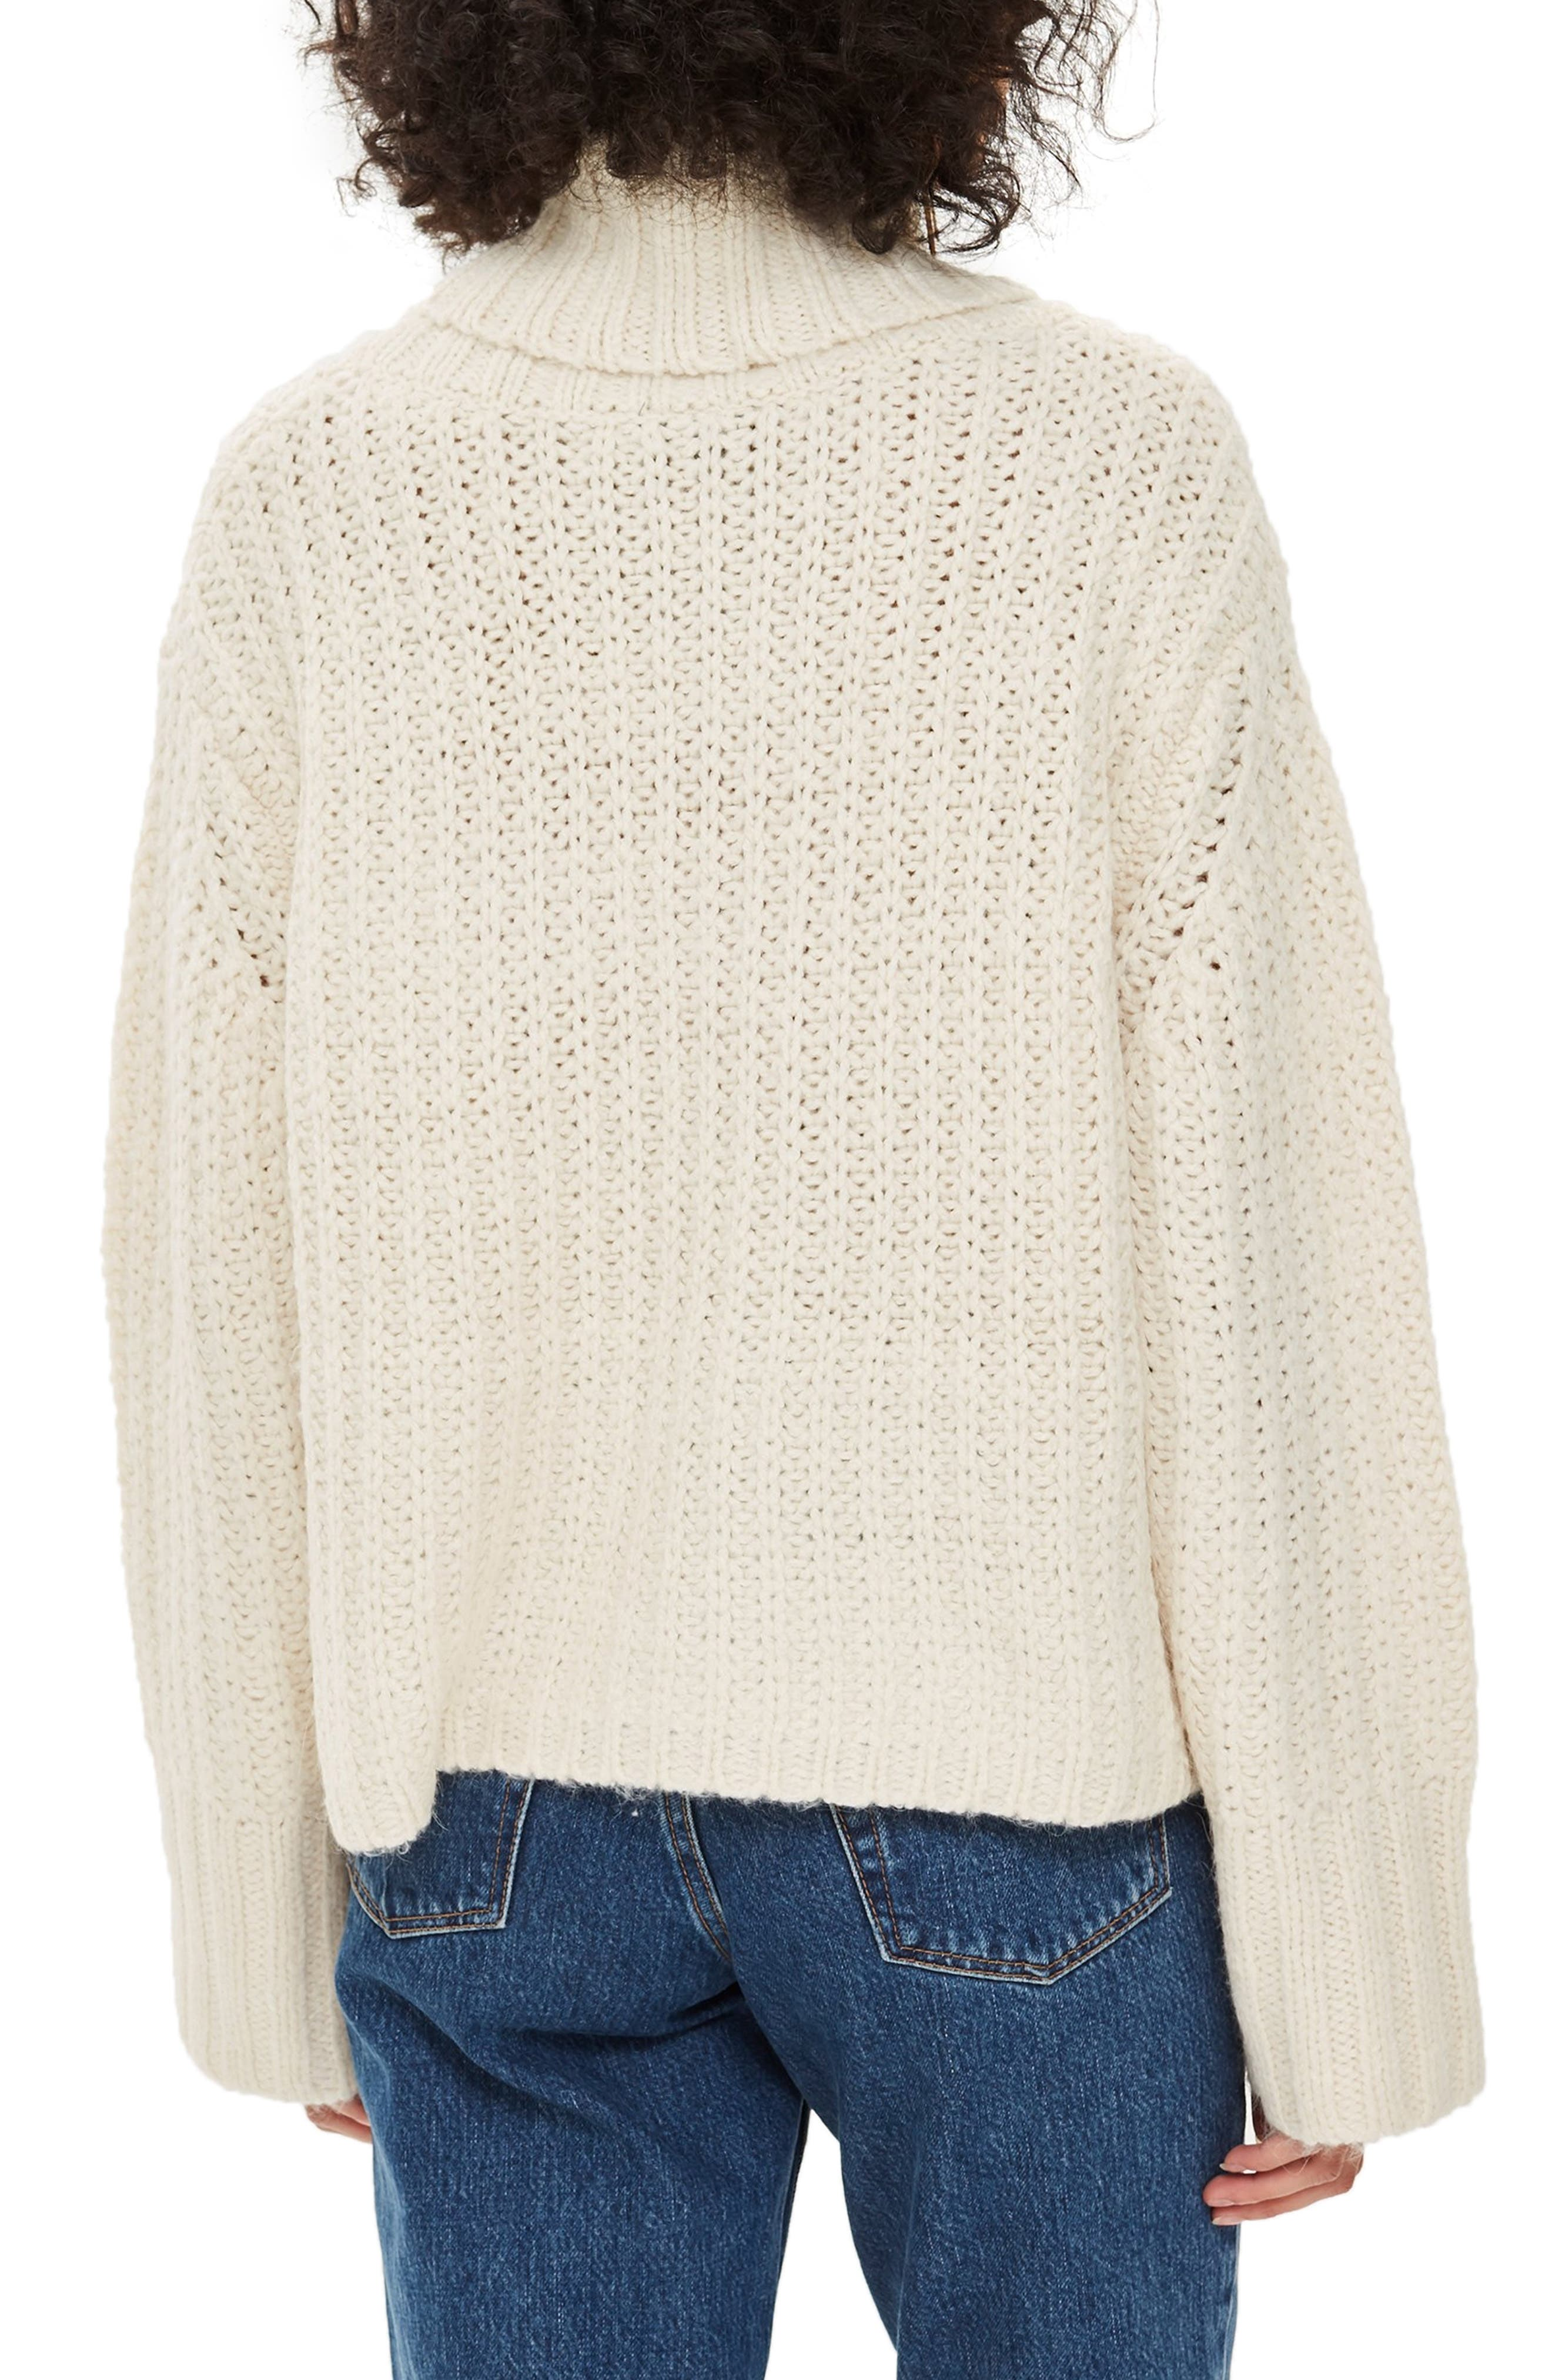 Chunky Roll Sweater,                             Alternate thumbnail 2, color,                             900